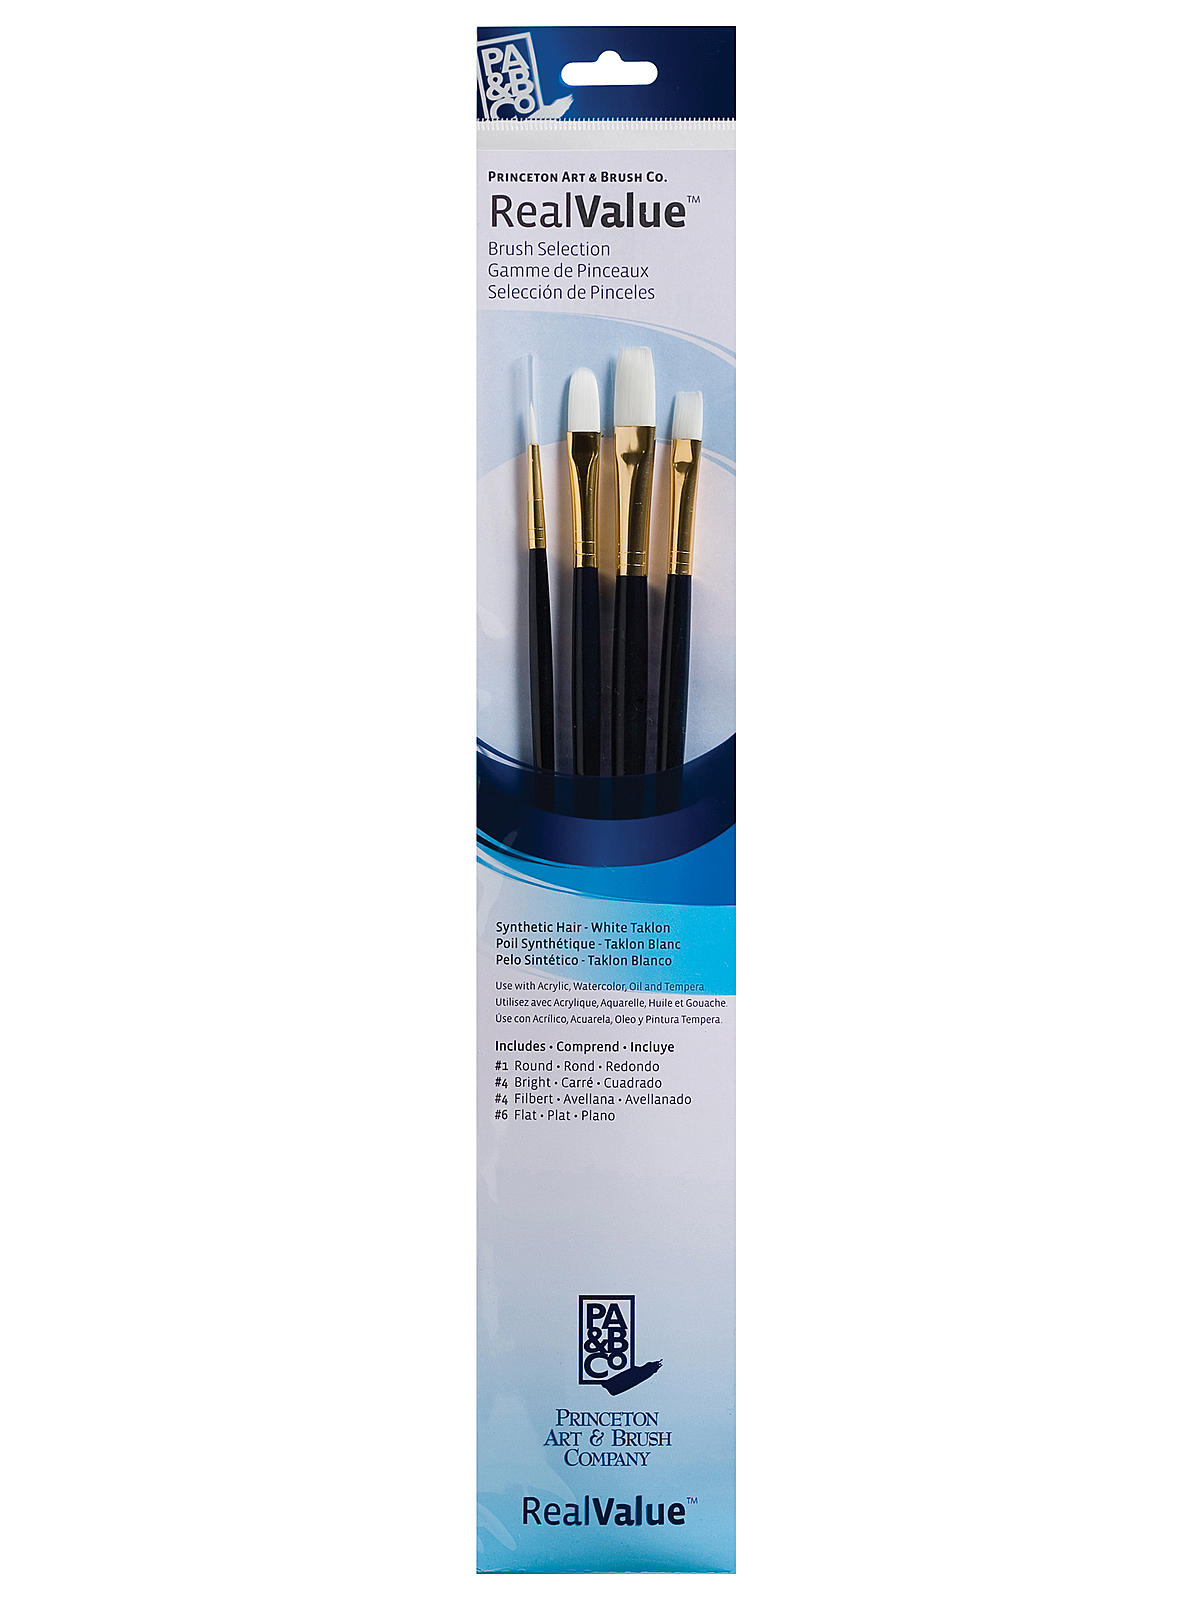 Real Value Series Blue Handled Brush Sets